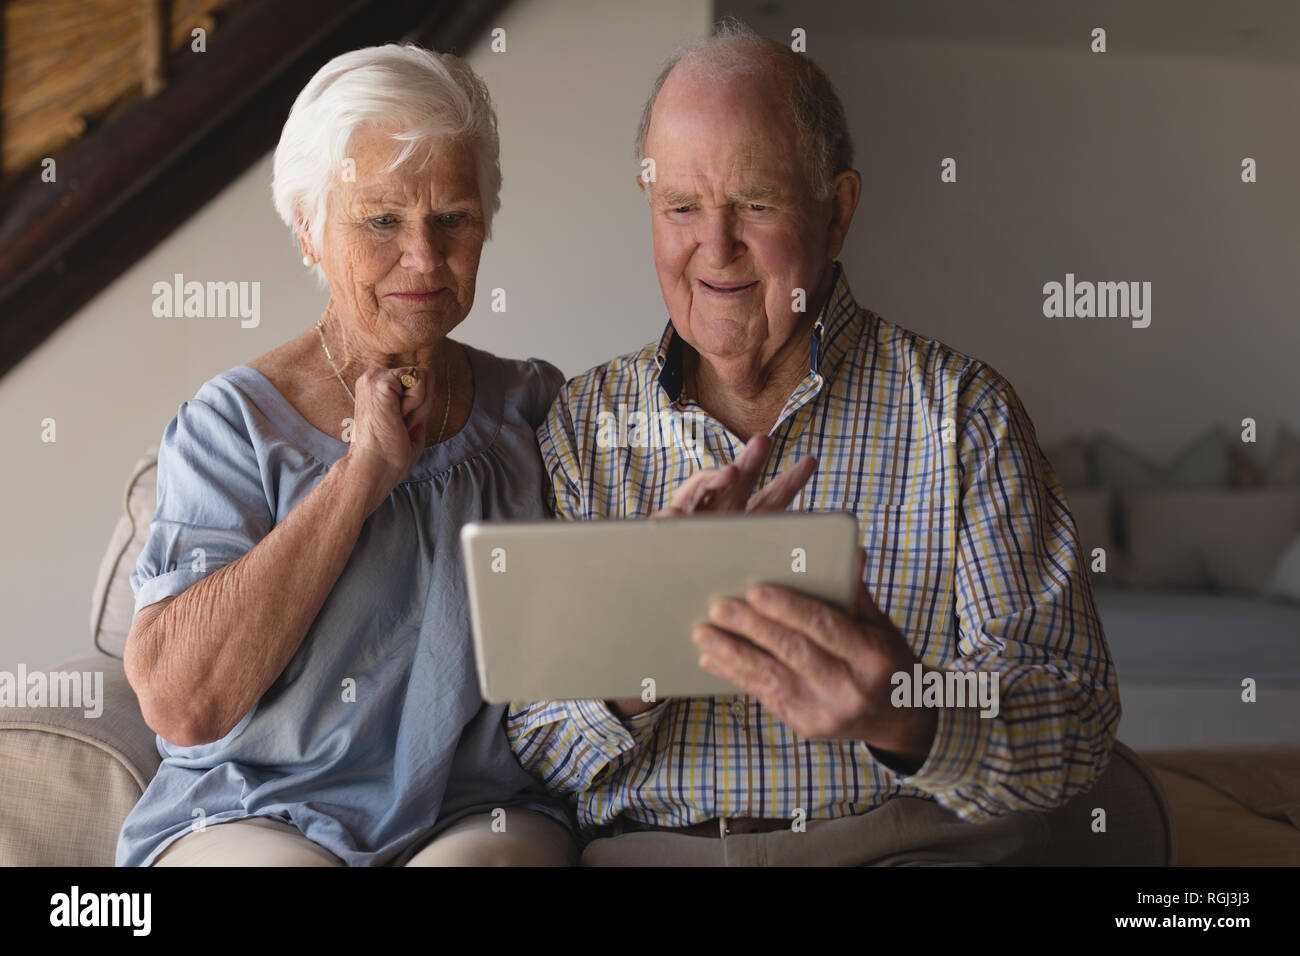 Front view of a senior couple using digital tablet in living room at home - Stock Image